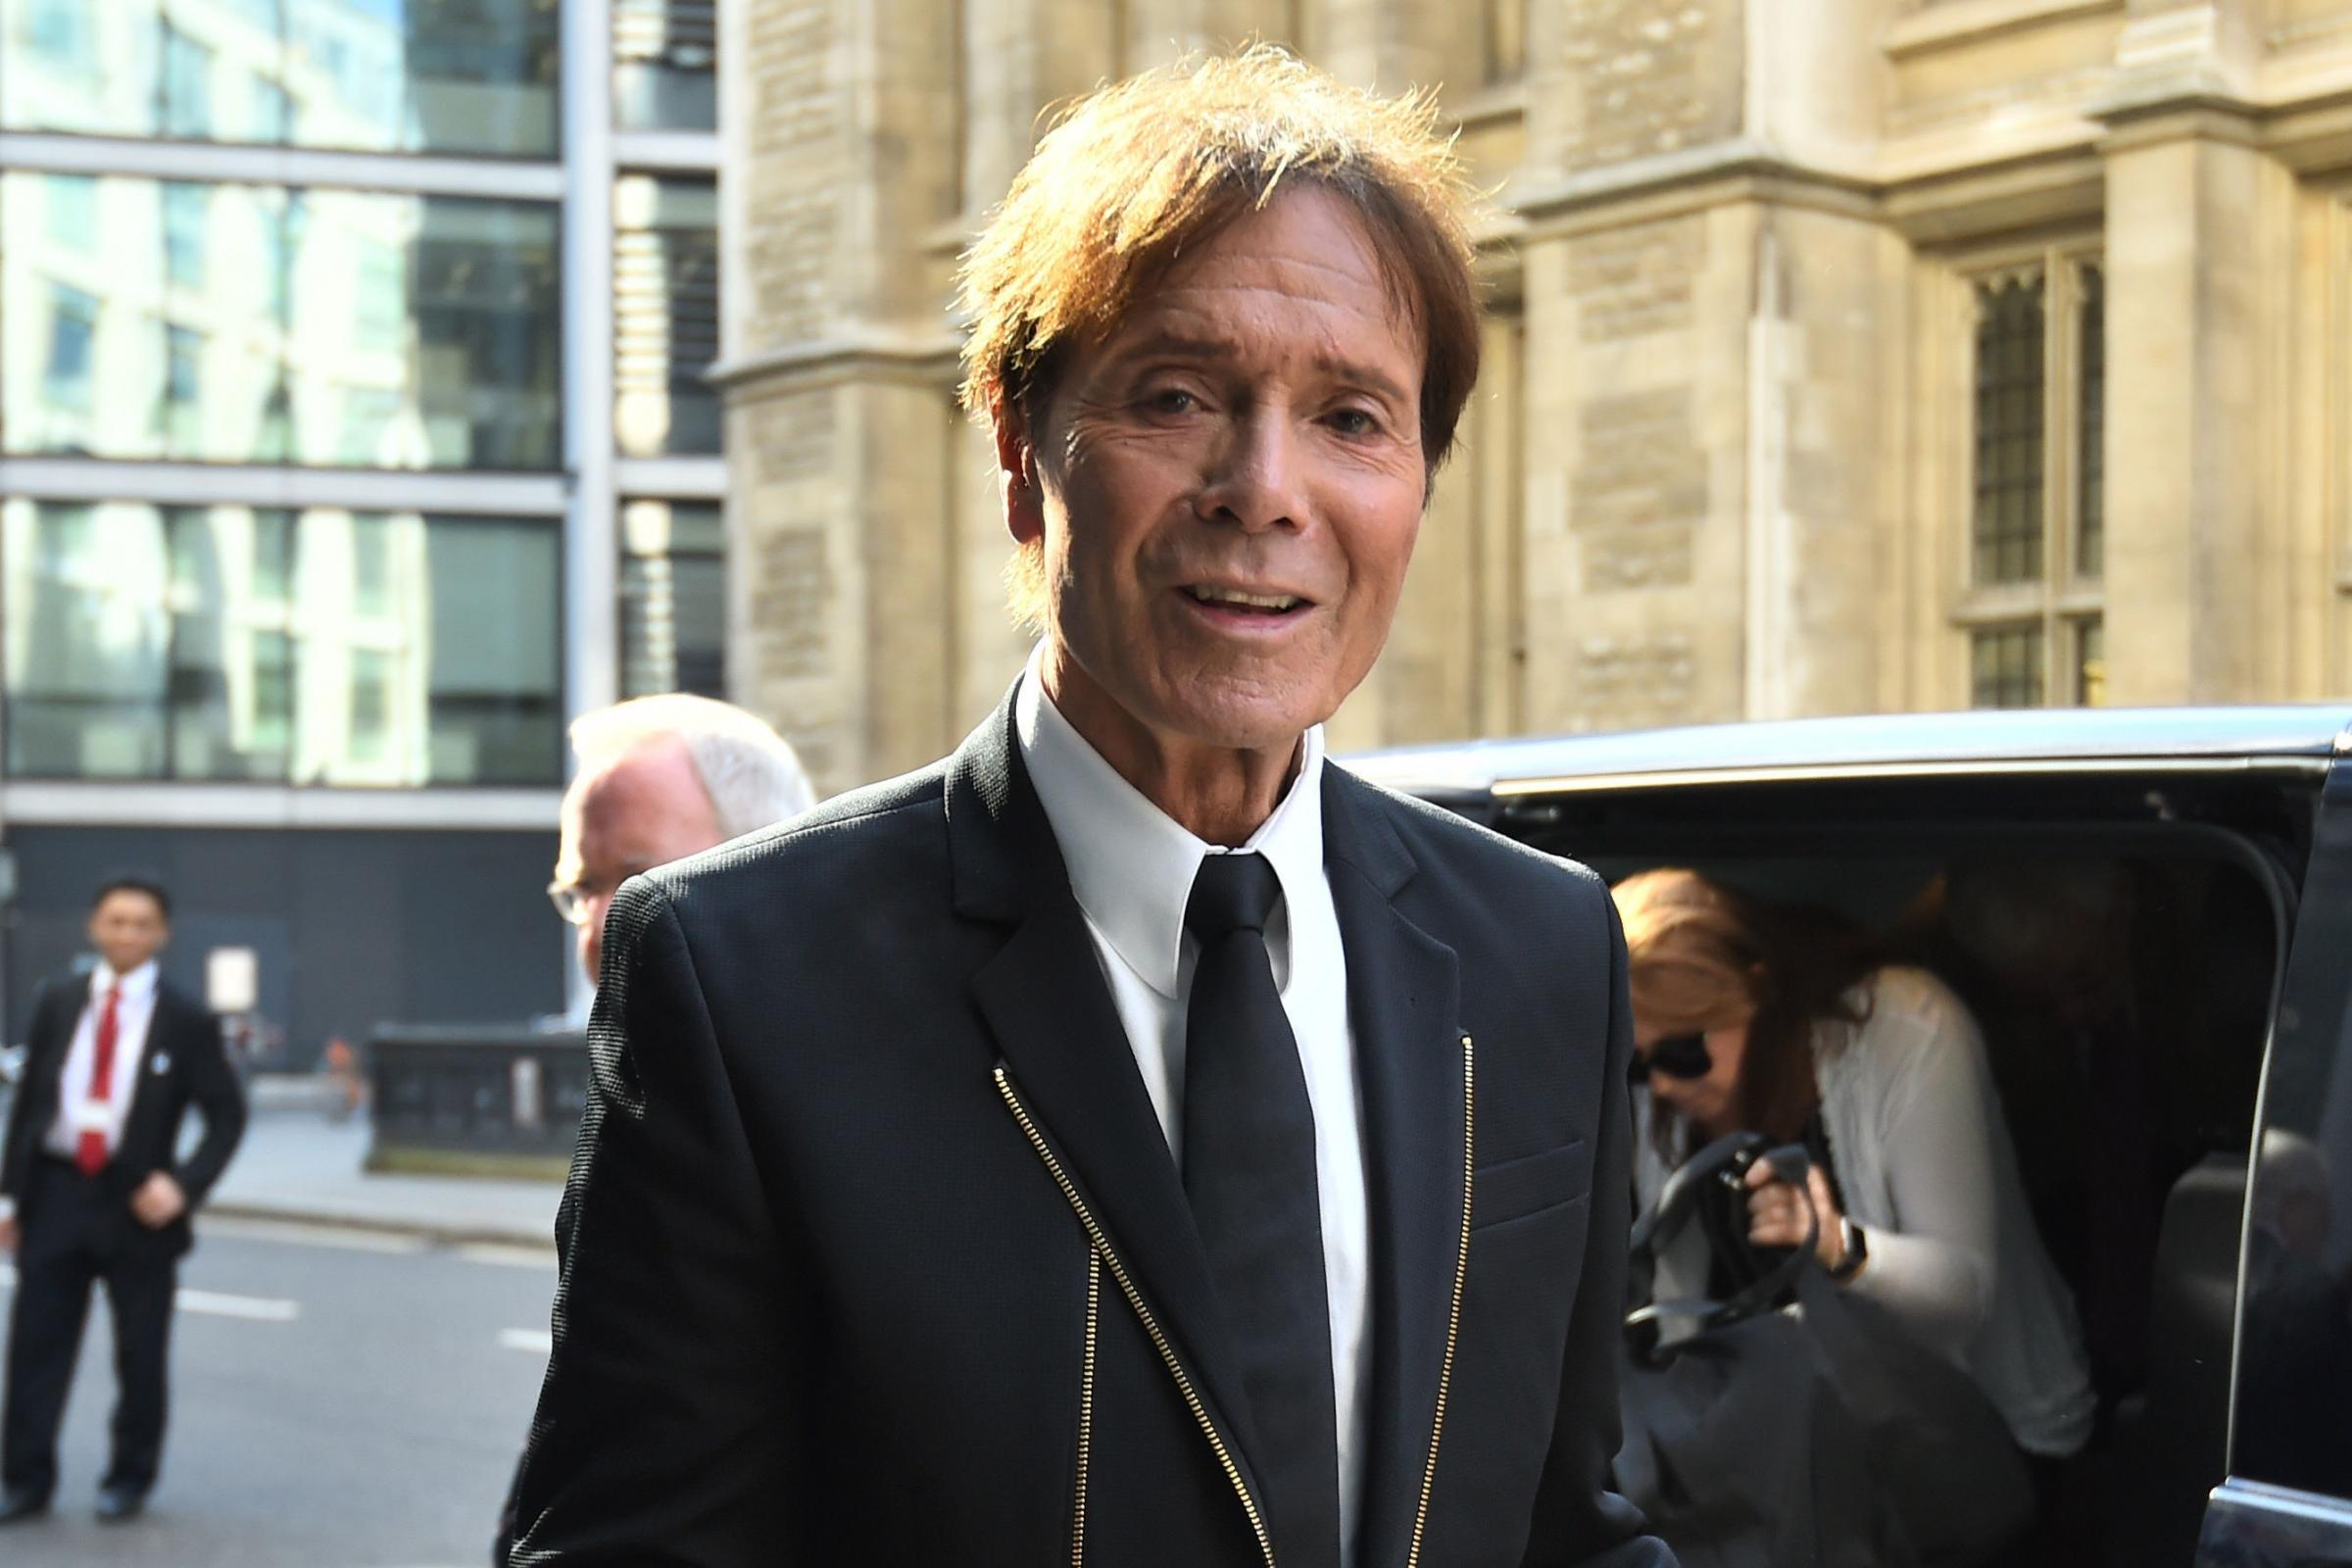 Chief 'knew there'd be repercussions' in Sir Cliff Richard case